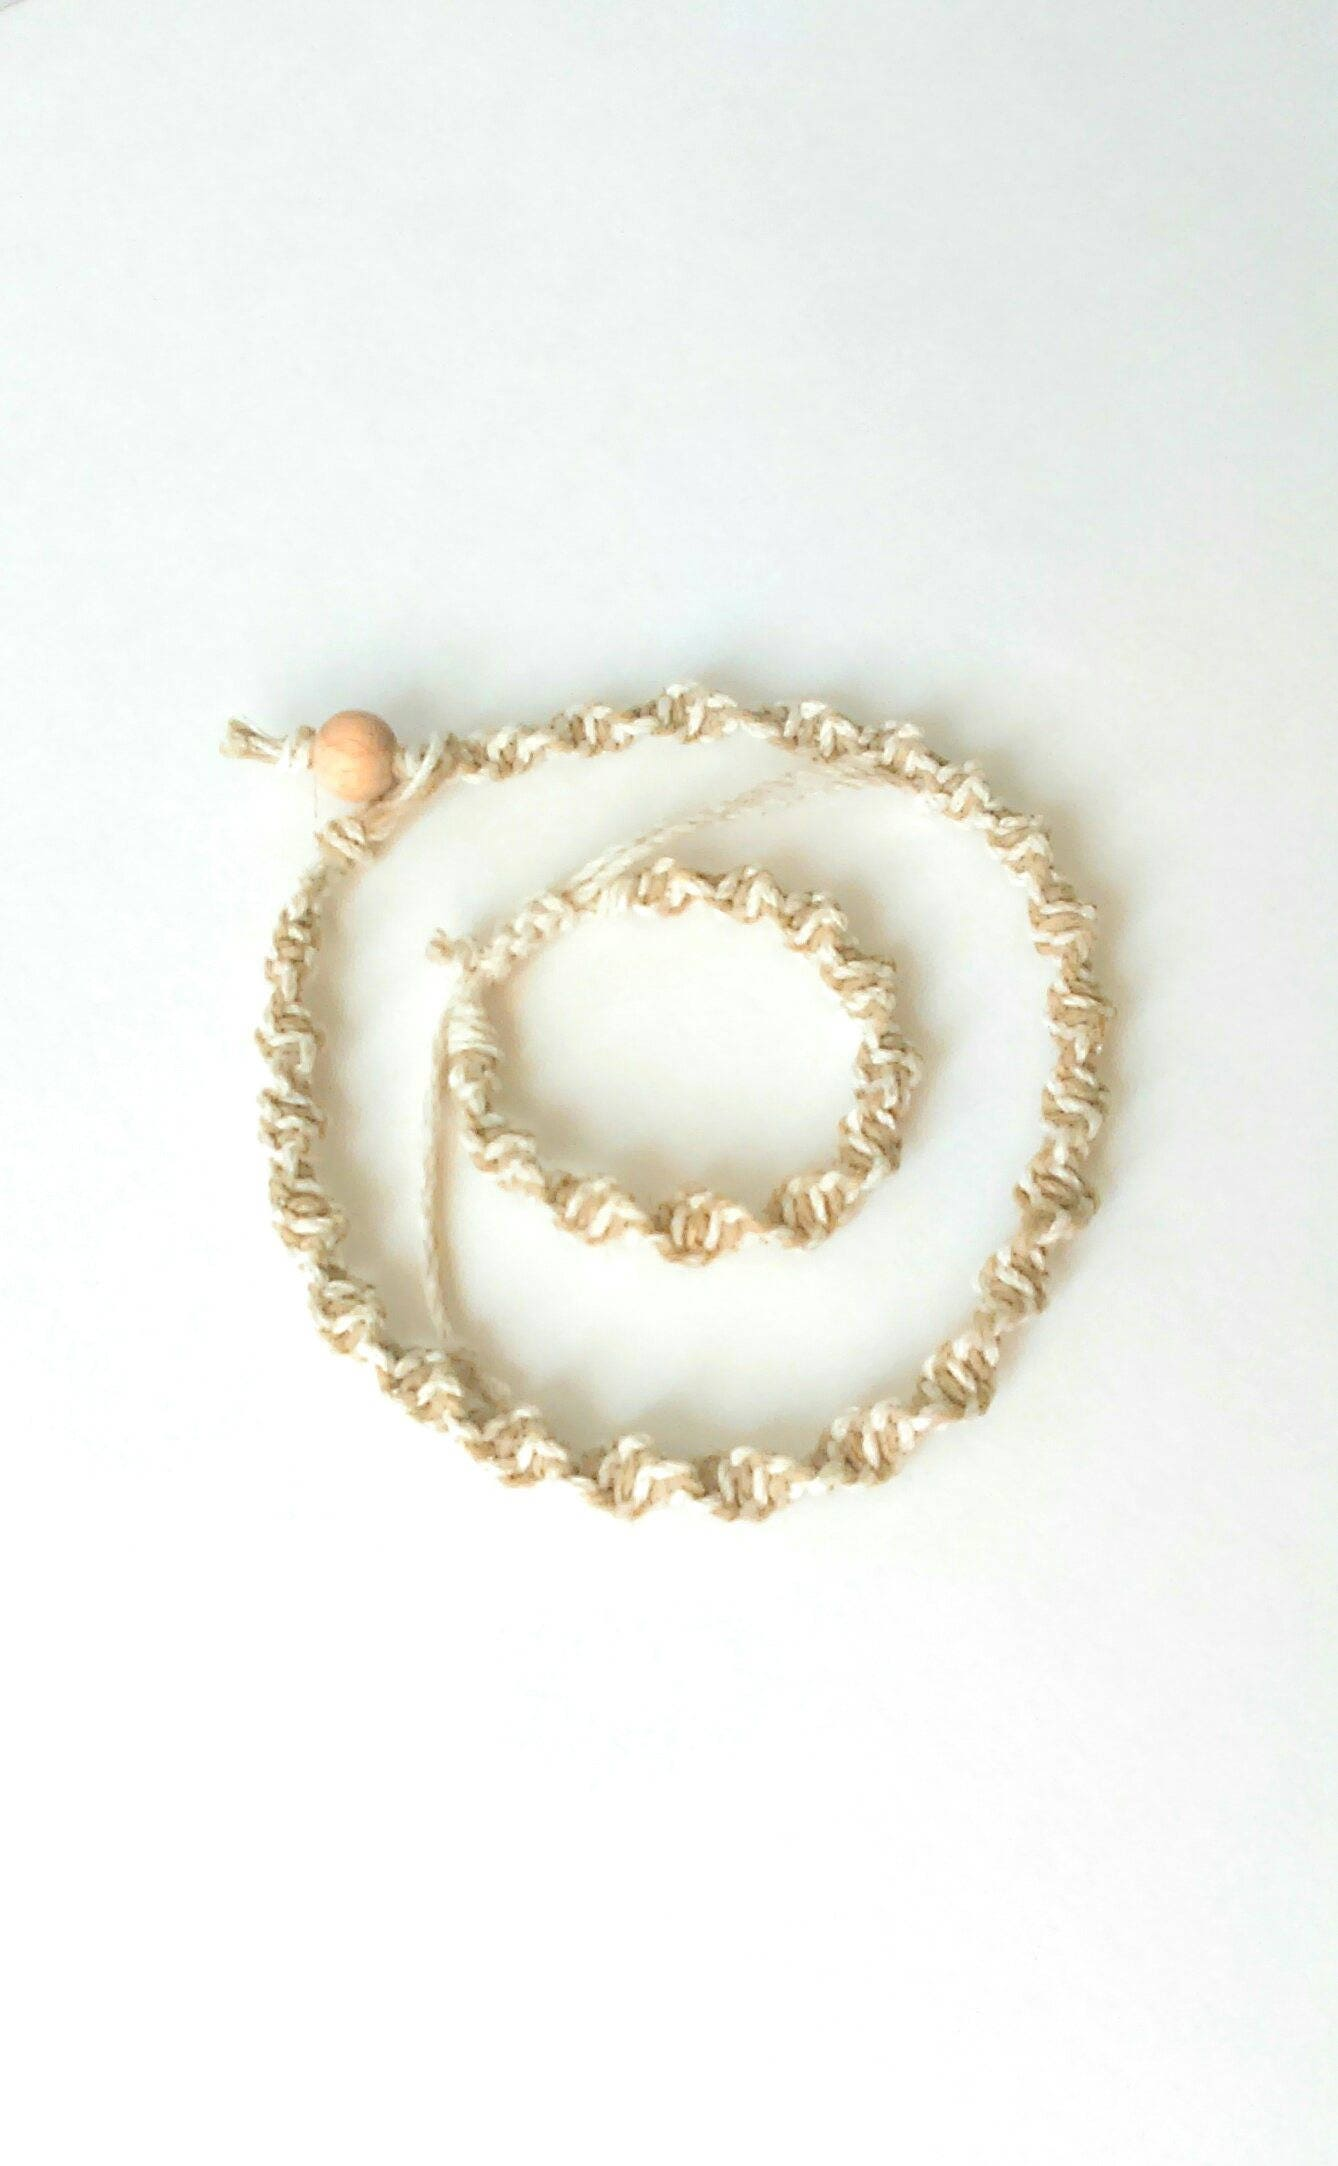 matching and anklet beach ankle on pretty bracelets unique girl jewellery gold chain leg lover simple heart foot ksvhs abklets jewelry silver women bracelet